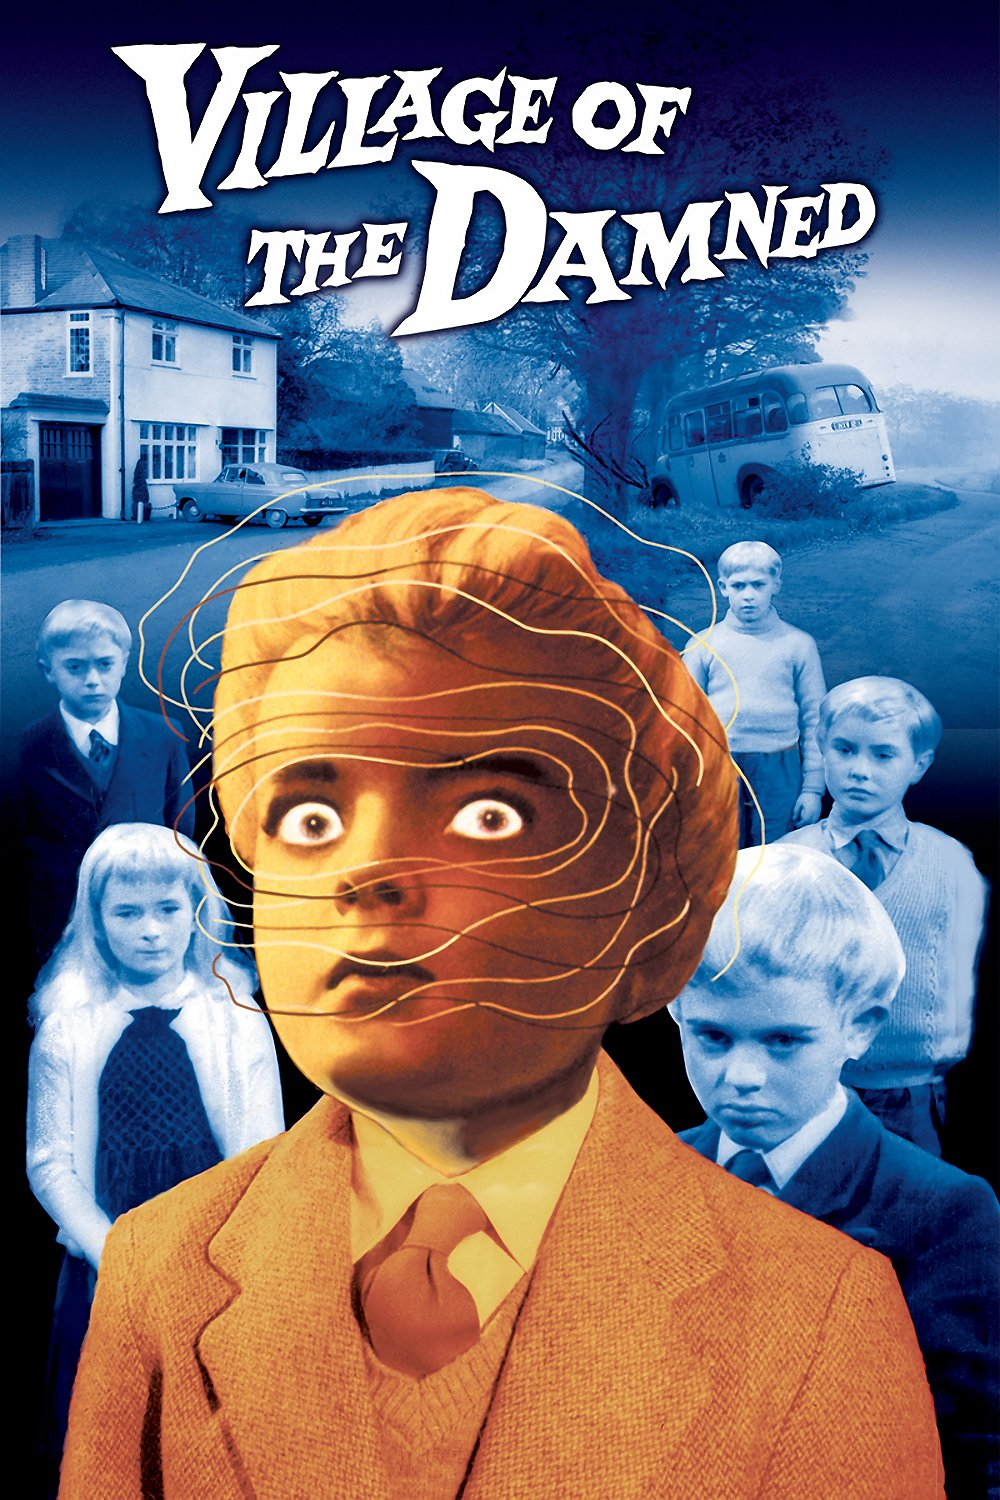 Poster for Village of the Damned